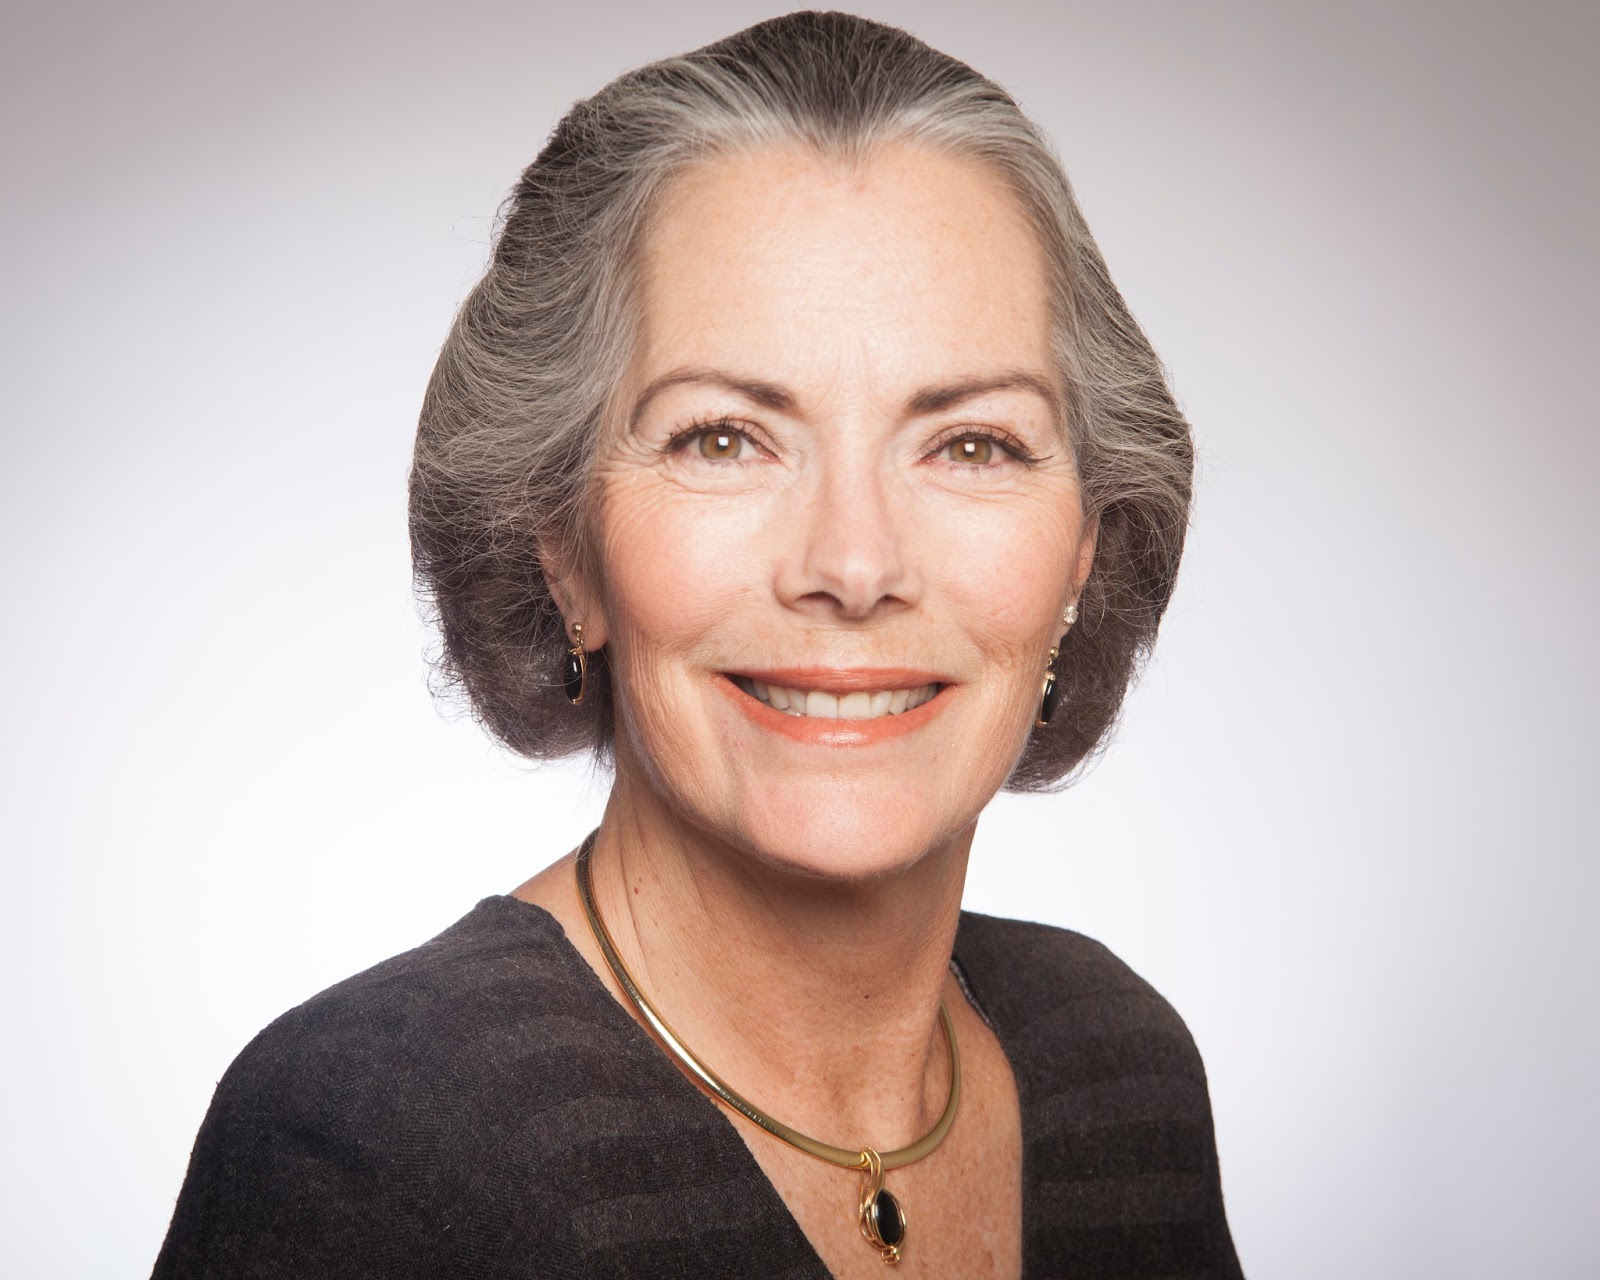 Dr. Nancy Unger